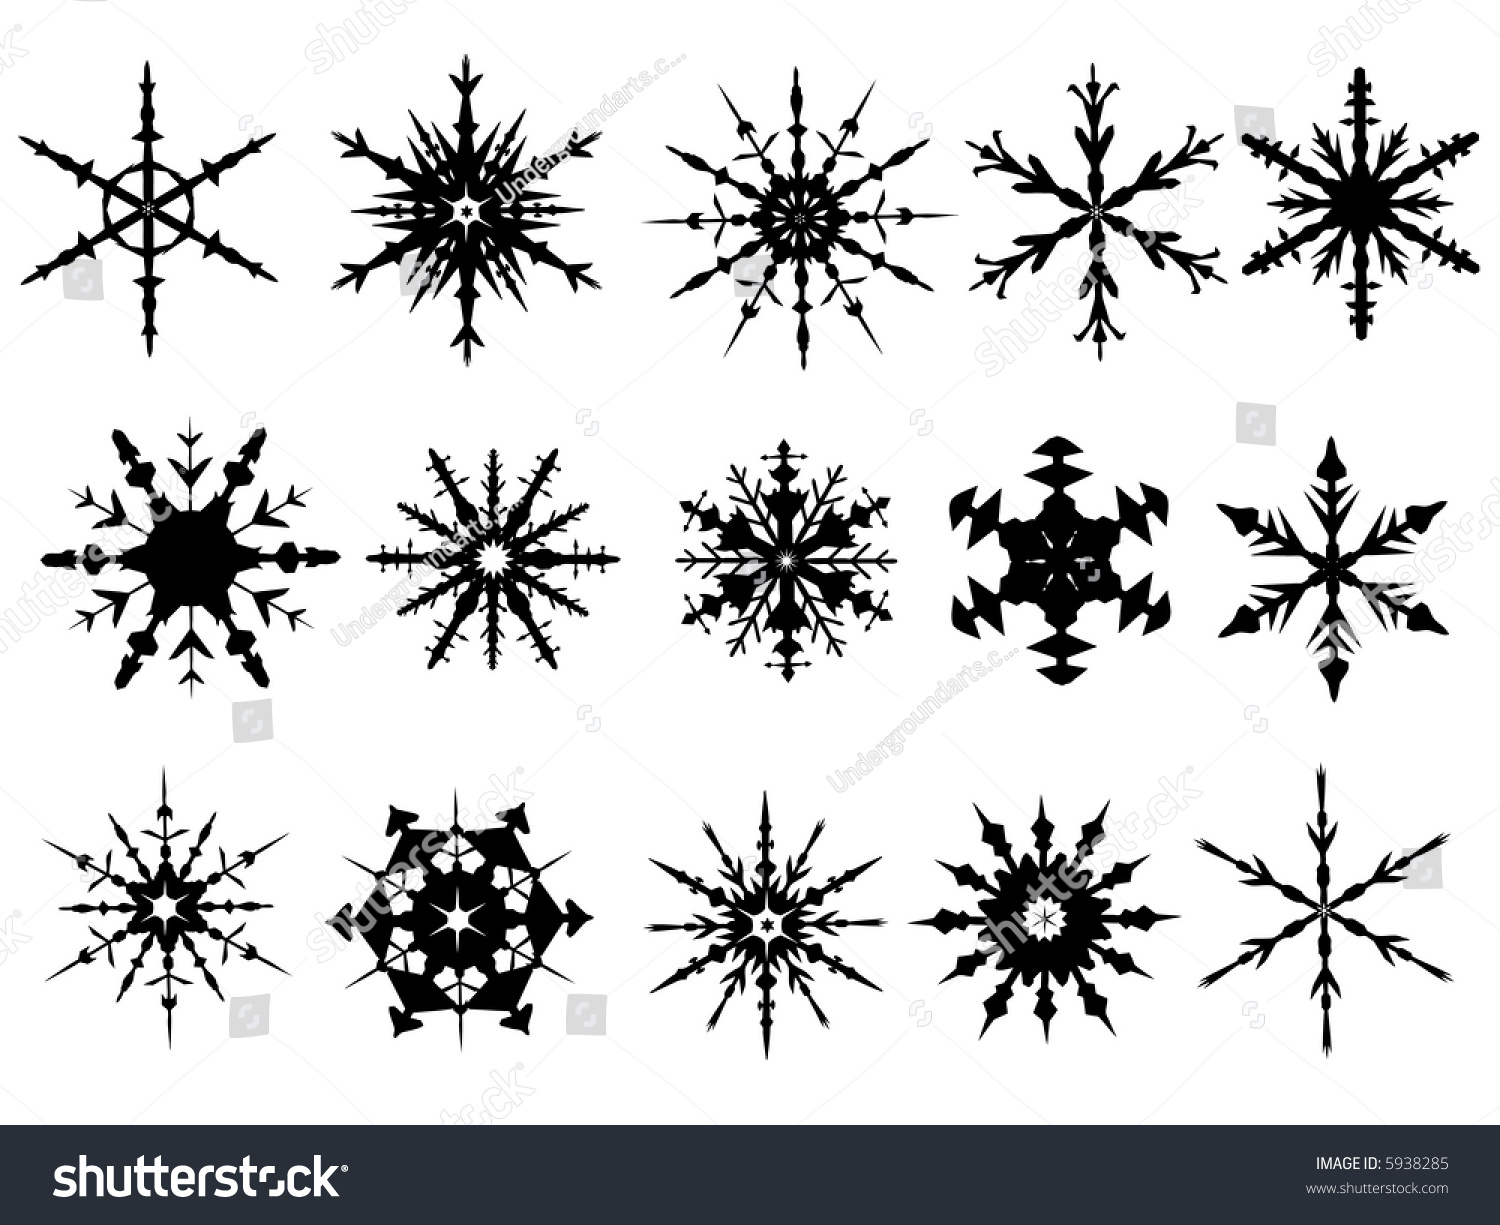 Snowflake Elements 3 4 Snowflakes Grouped Stock Vector